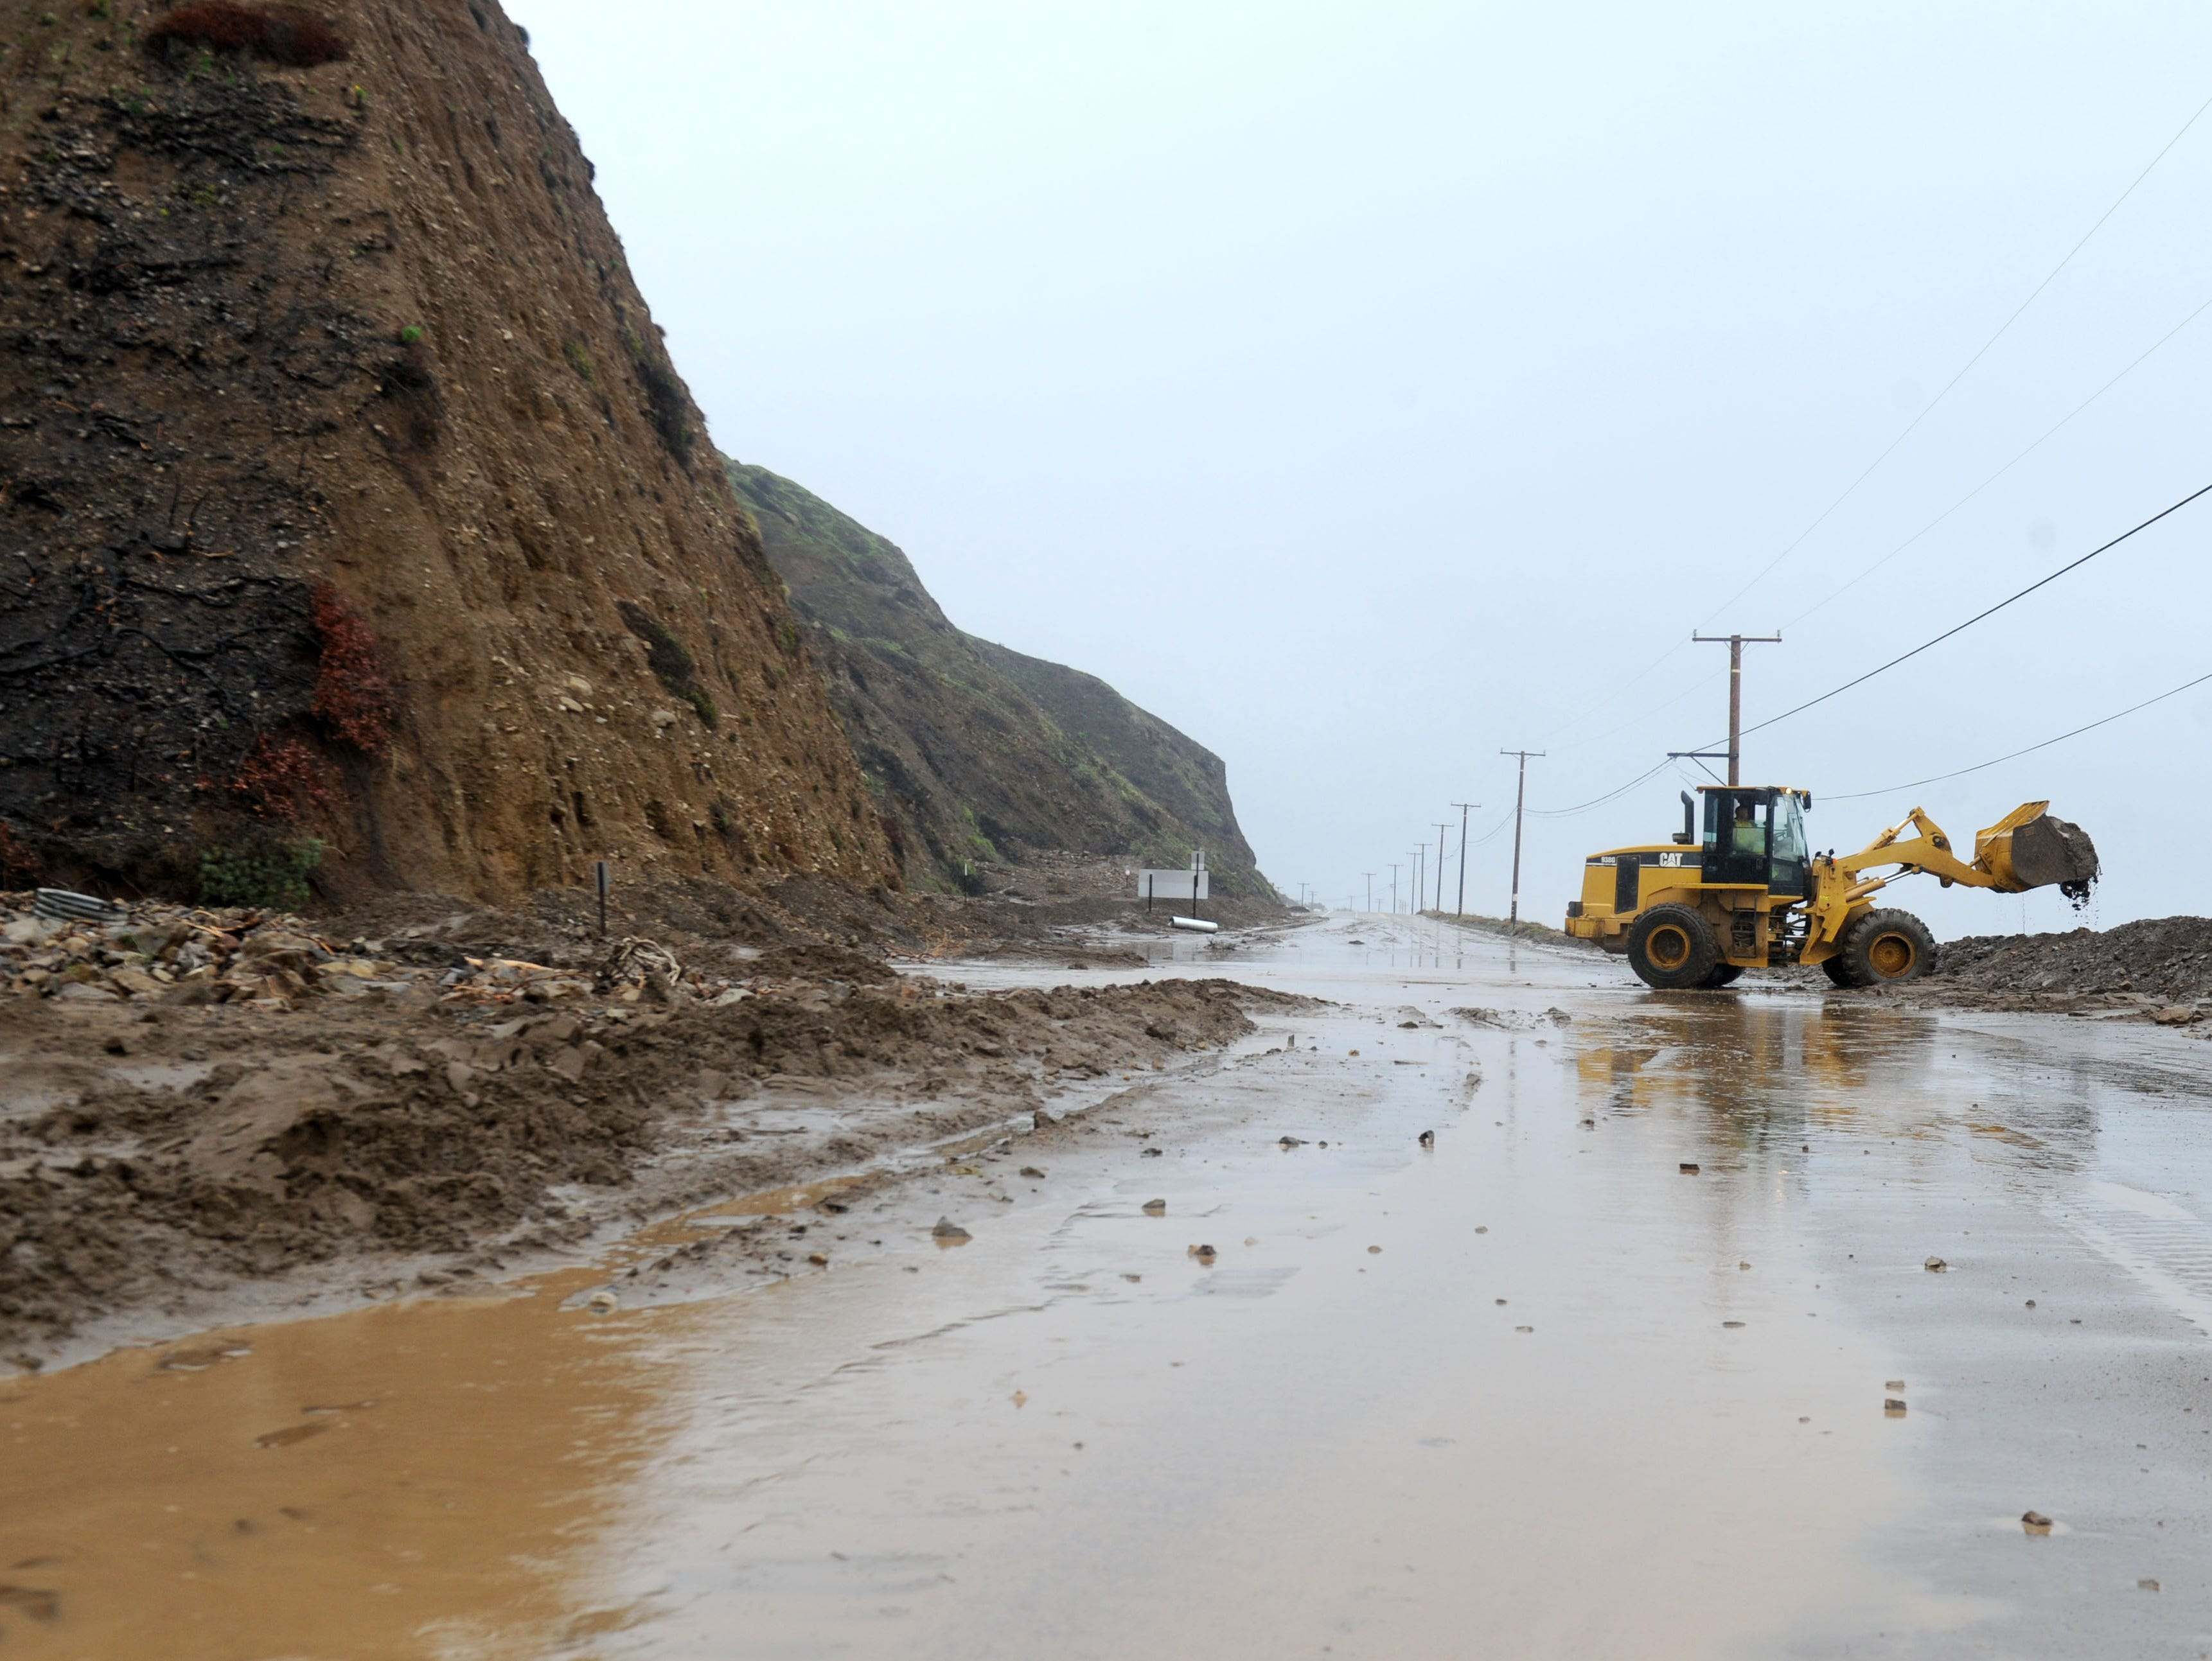 Crews work Saturday to remove dirt and rocks from Pacific Coast Highway near Deer Creek Road after a storm washed debris onto the thoroughfare.